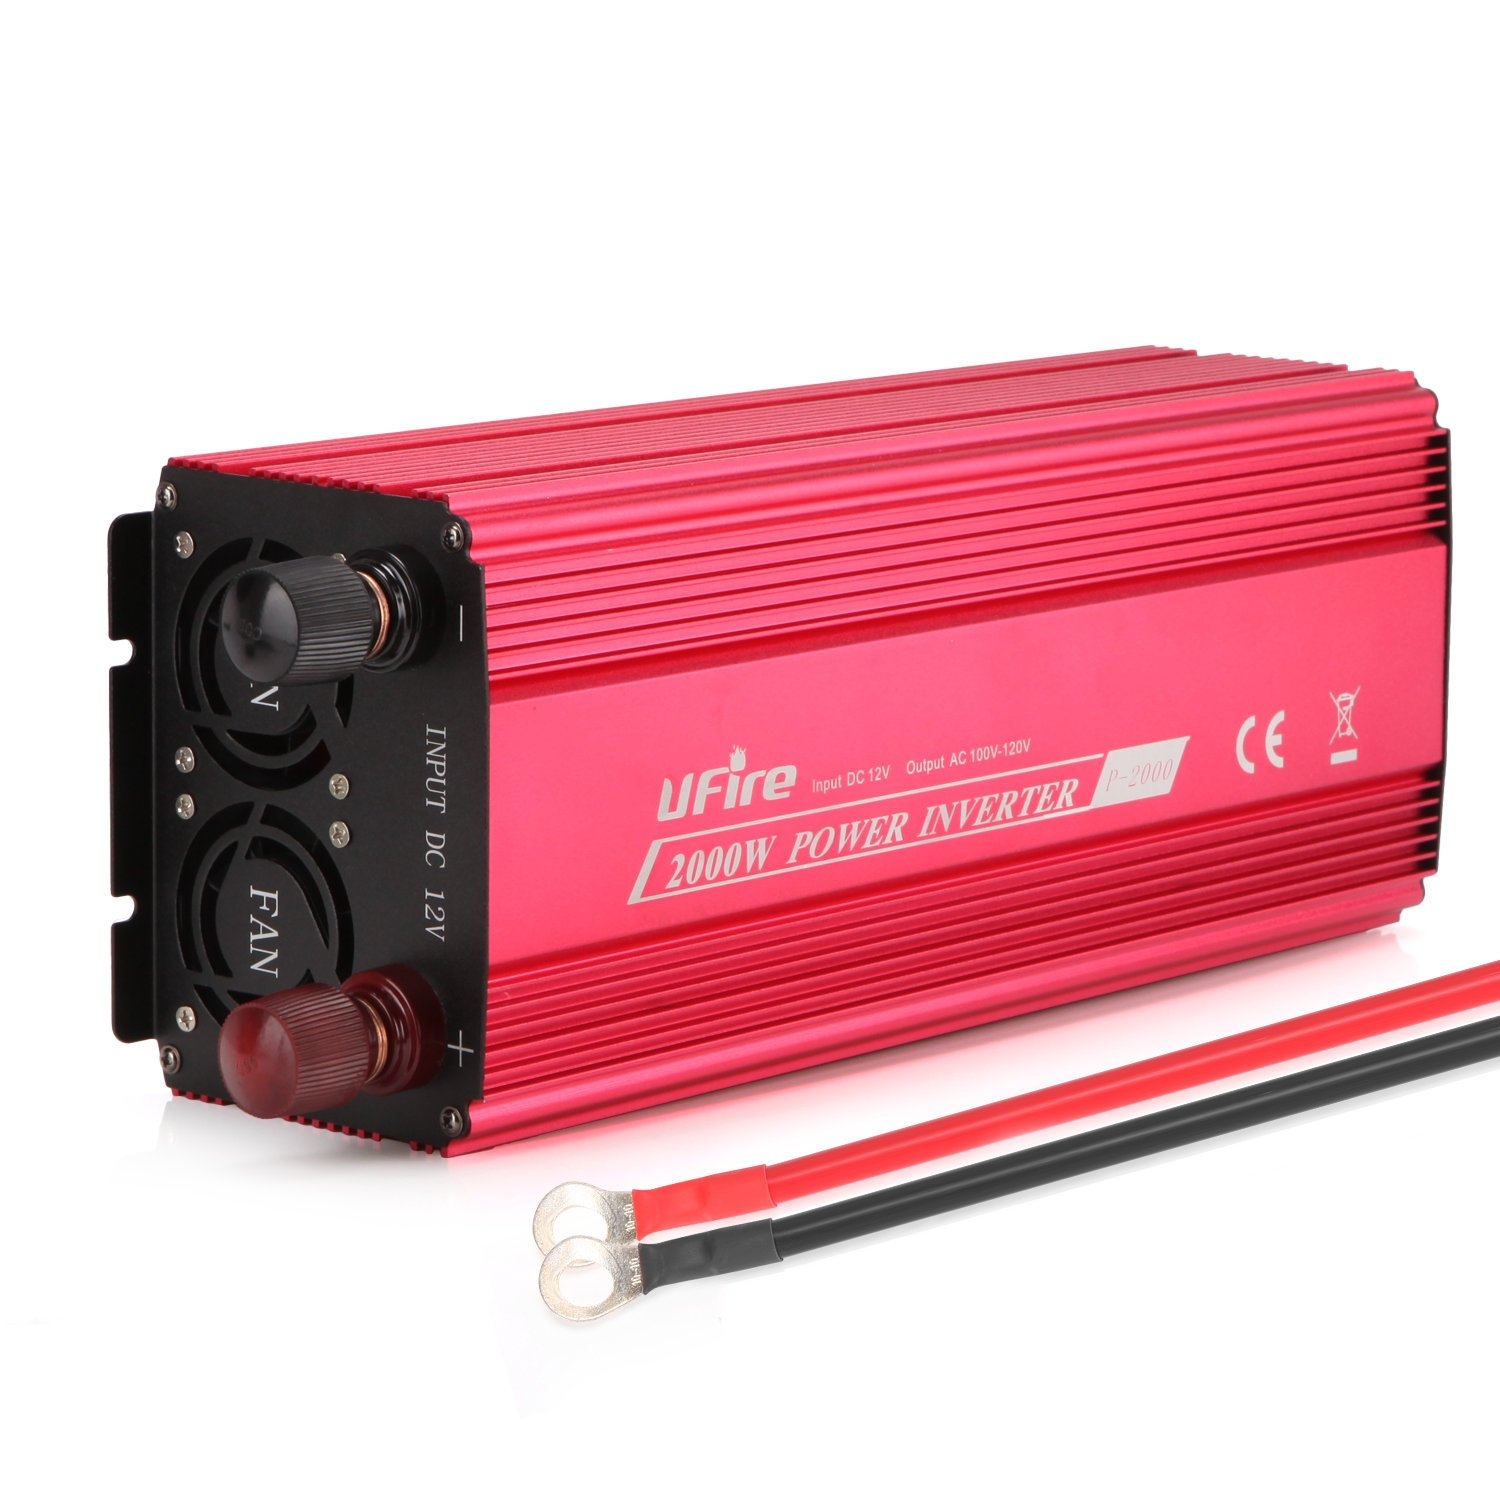 UFire 2000W Power Inverter DC 12V To 110V AC Car Converter With 2 AC Outlets 2A USB Car Adapter -Red by UFire